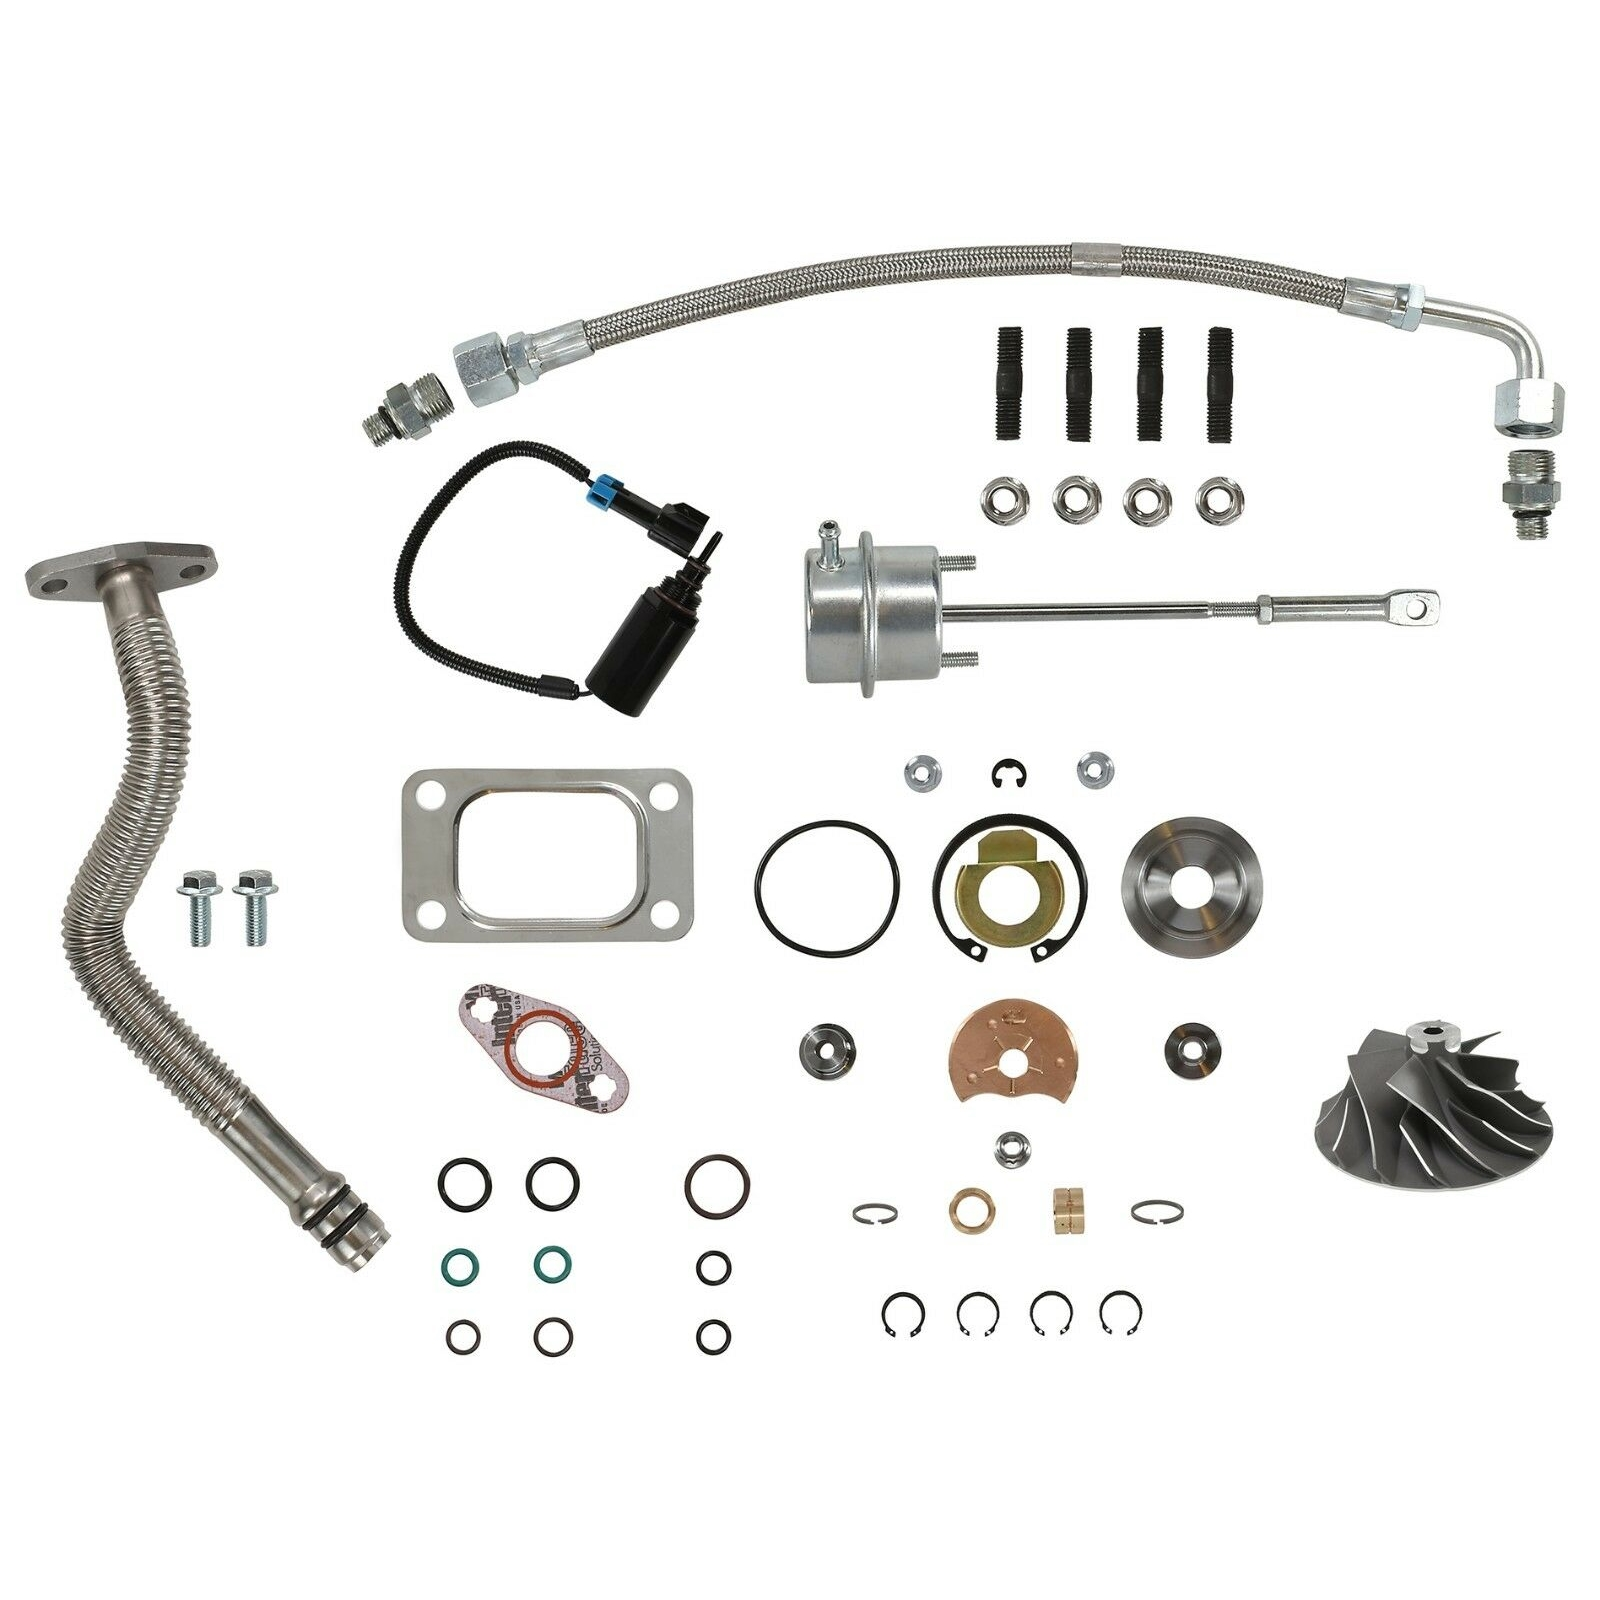 HE351CW Turbo Rebuild Kit Cast Wheel Actuator Oil Lines Wastegate Solenoid For 04.5-07 5.9L ISB Dodge Ram Cummins Diesel